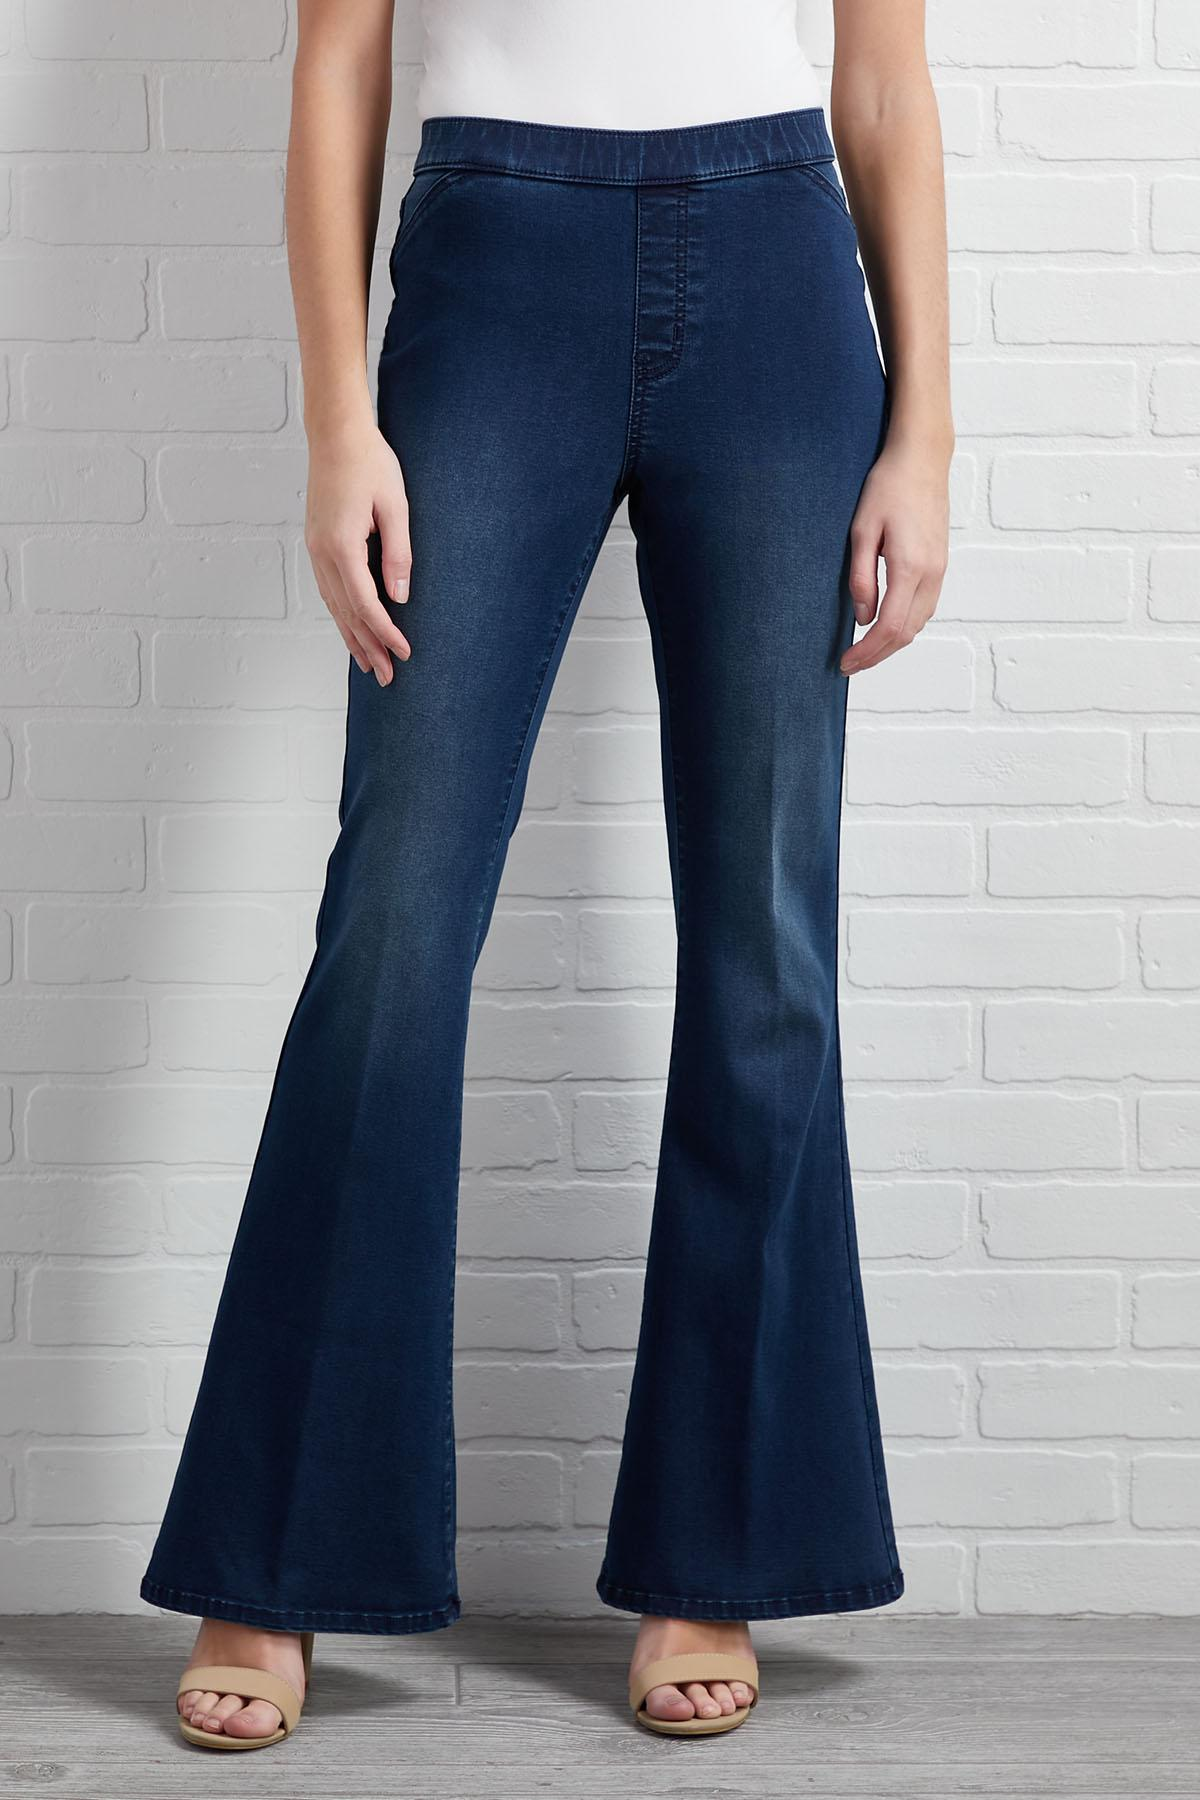 Drama Queen Jeans